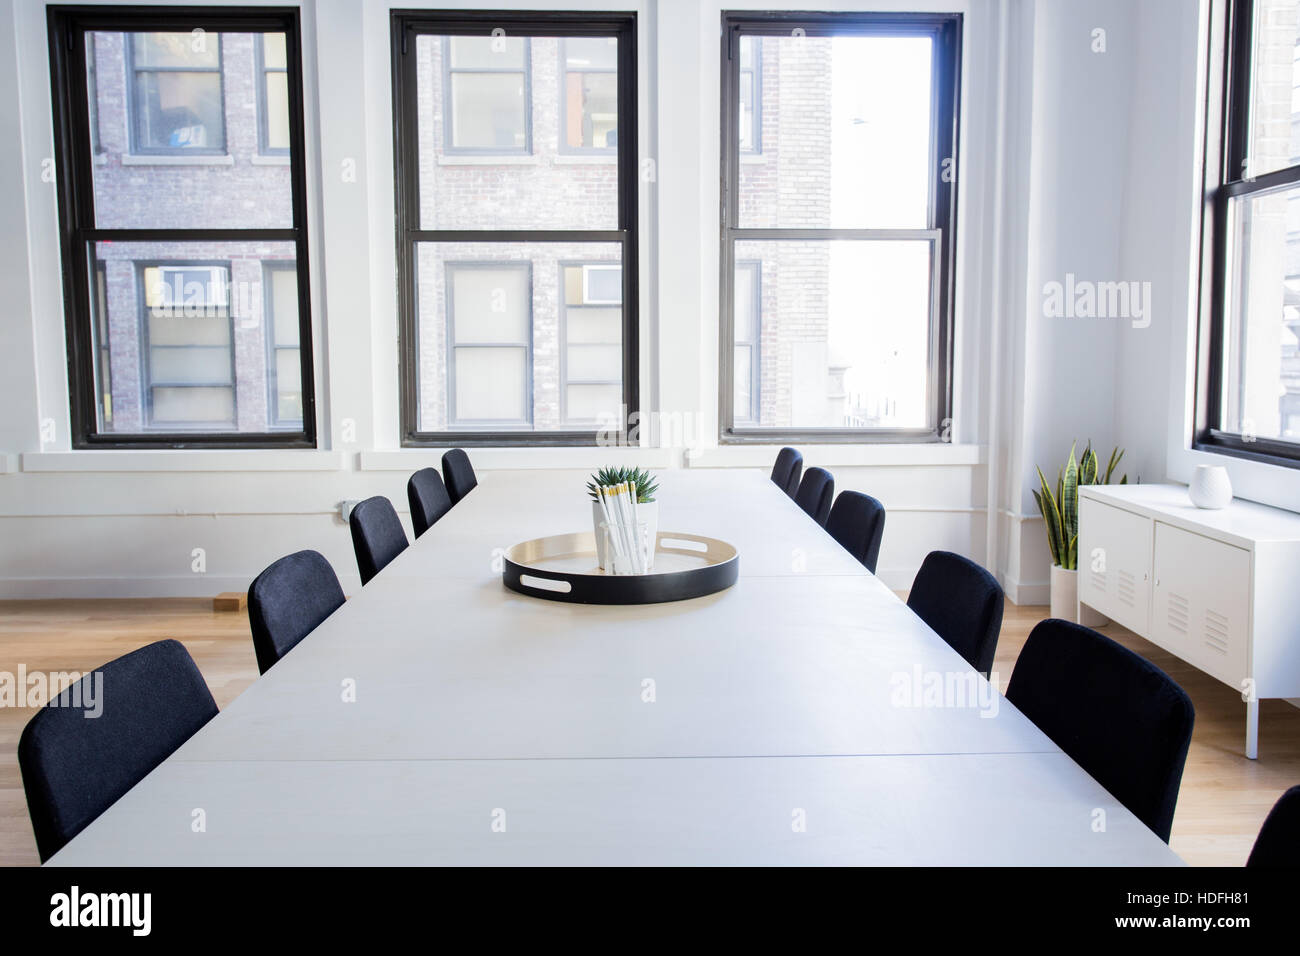 Modern Office Interior, conference room. - Stock Photo